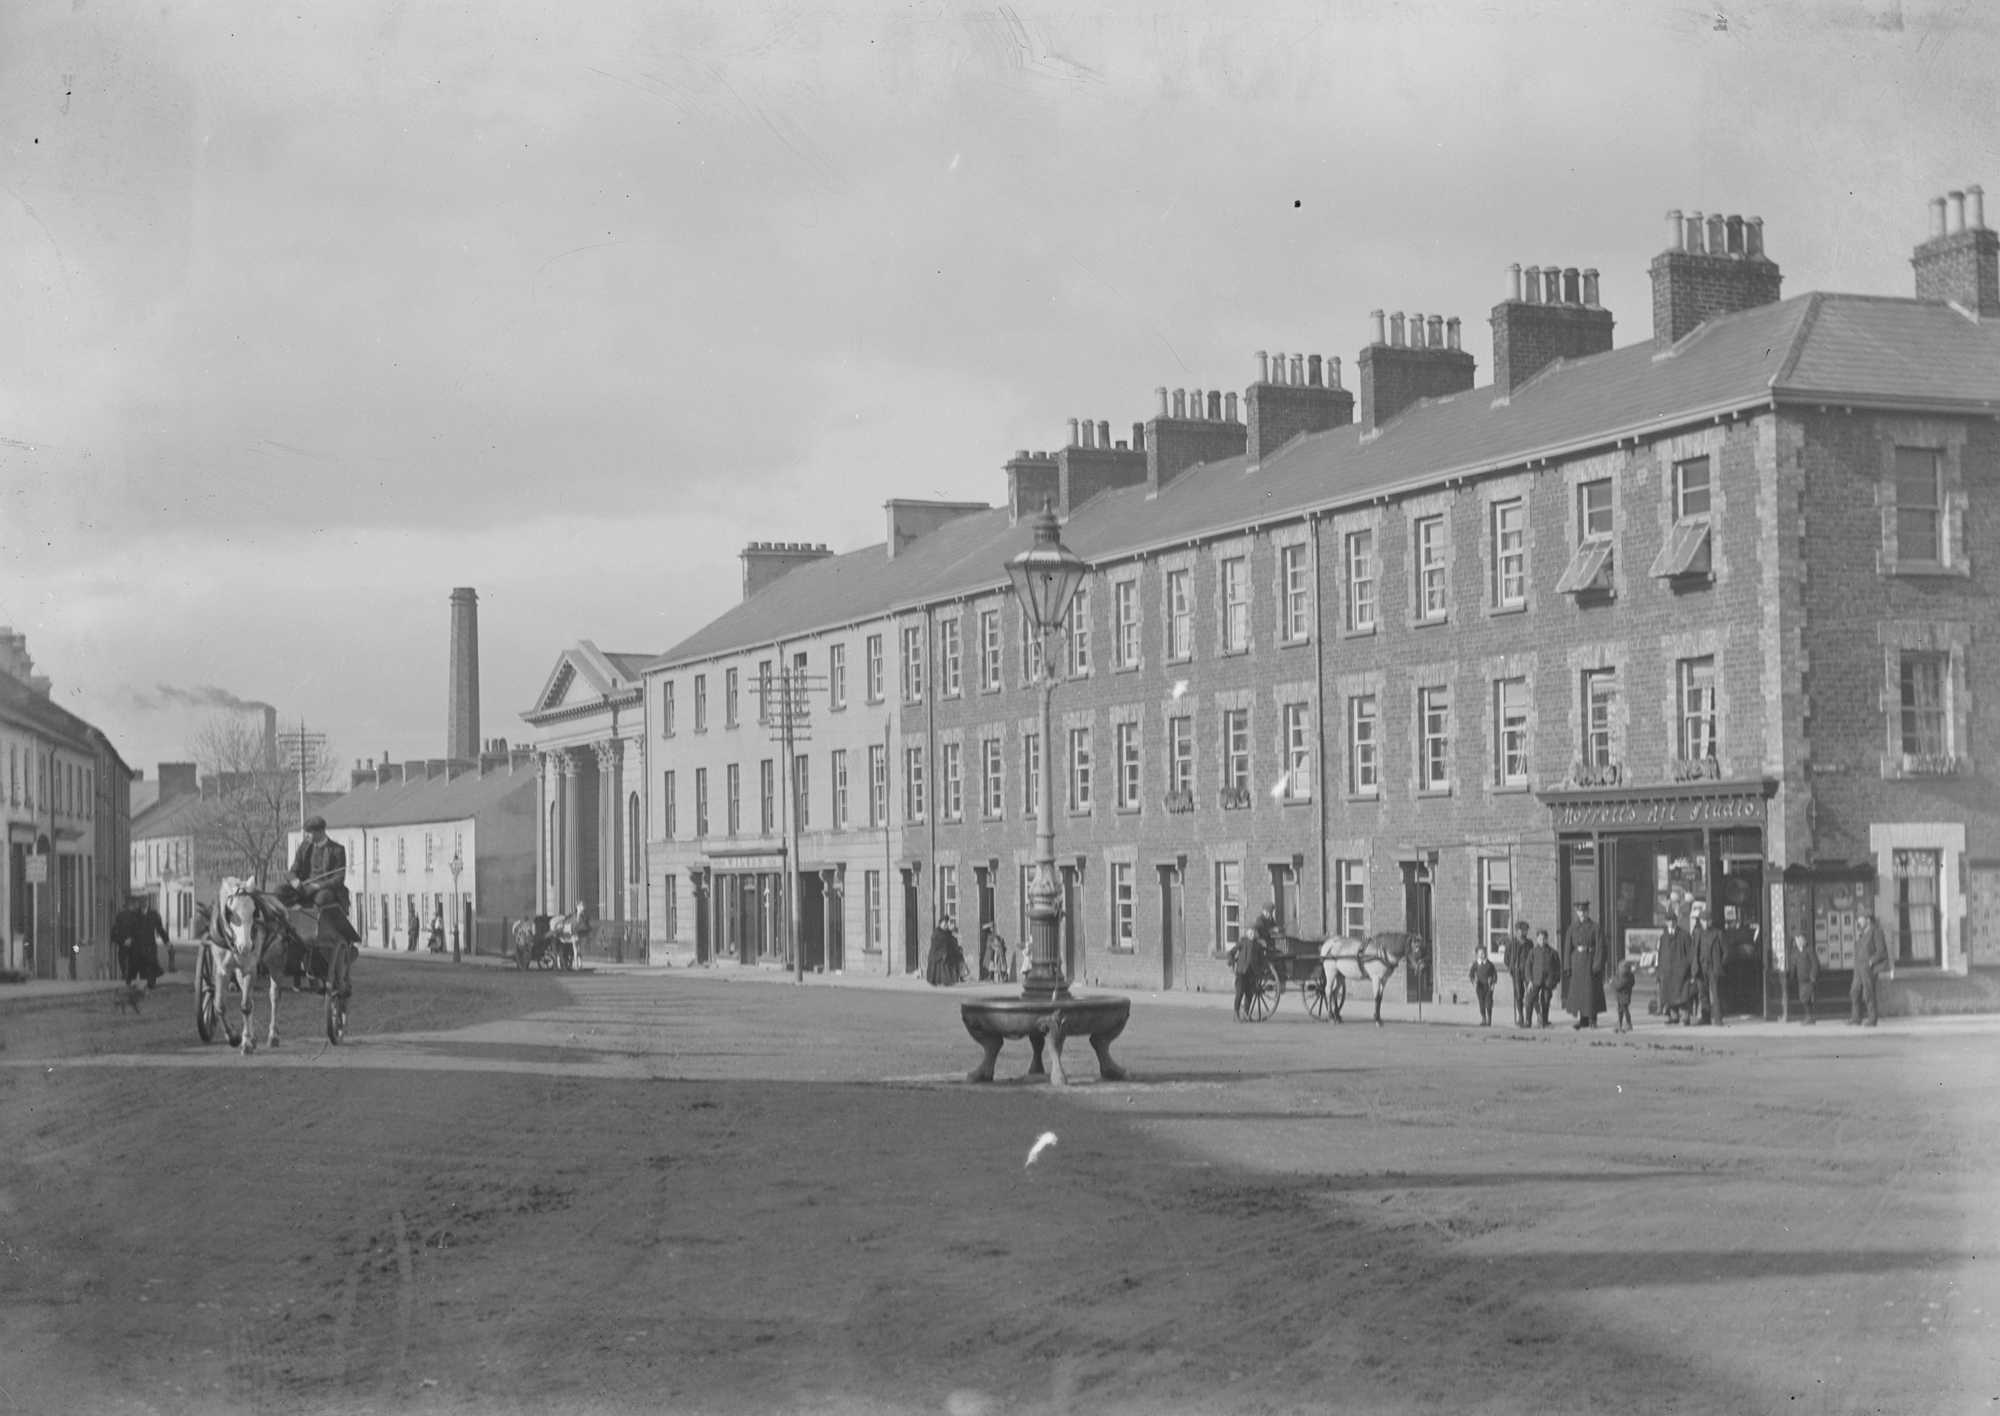 Bridge Street showing First Presbyterian Church, Portadown, Co. Armagh